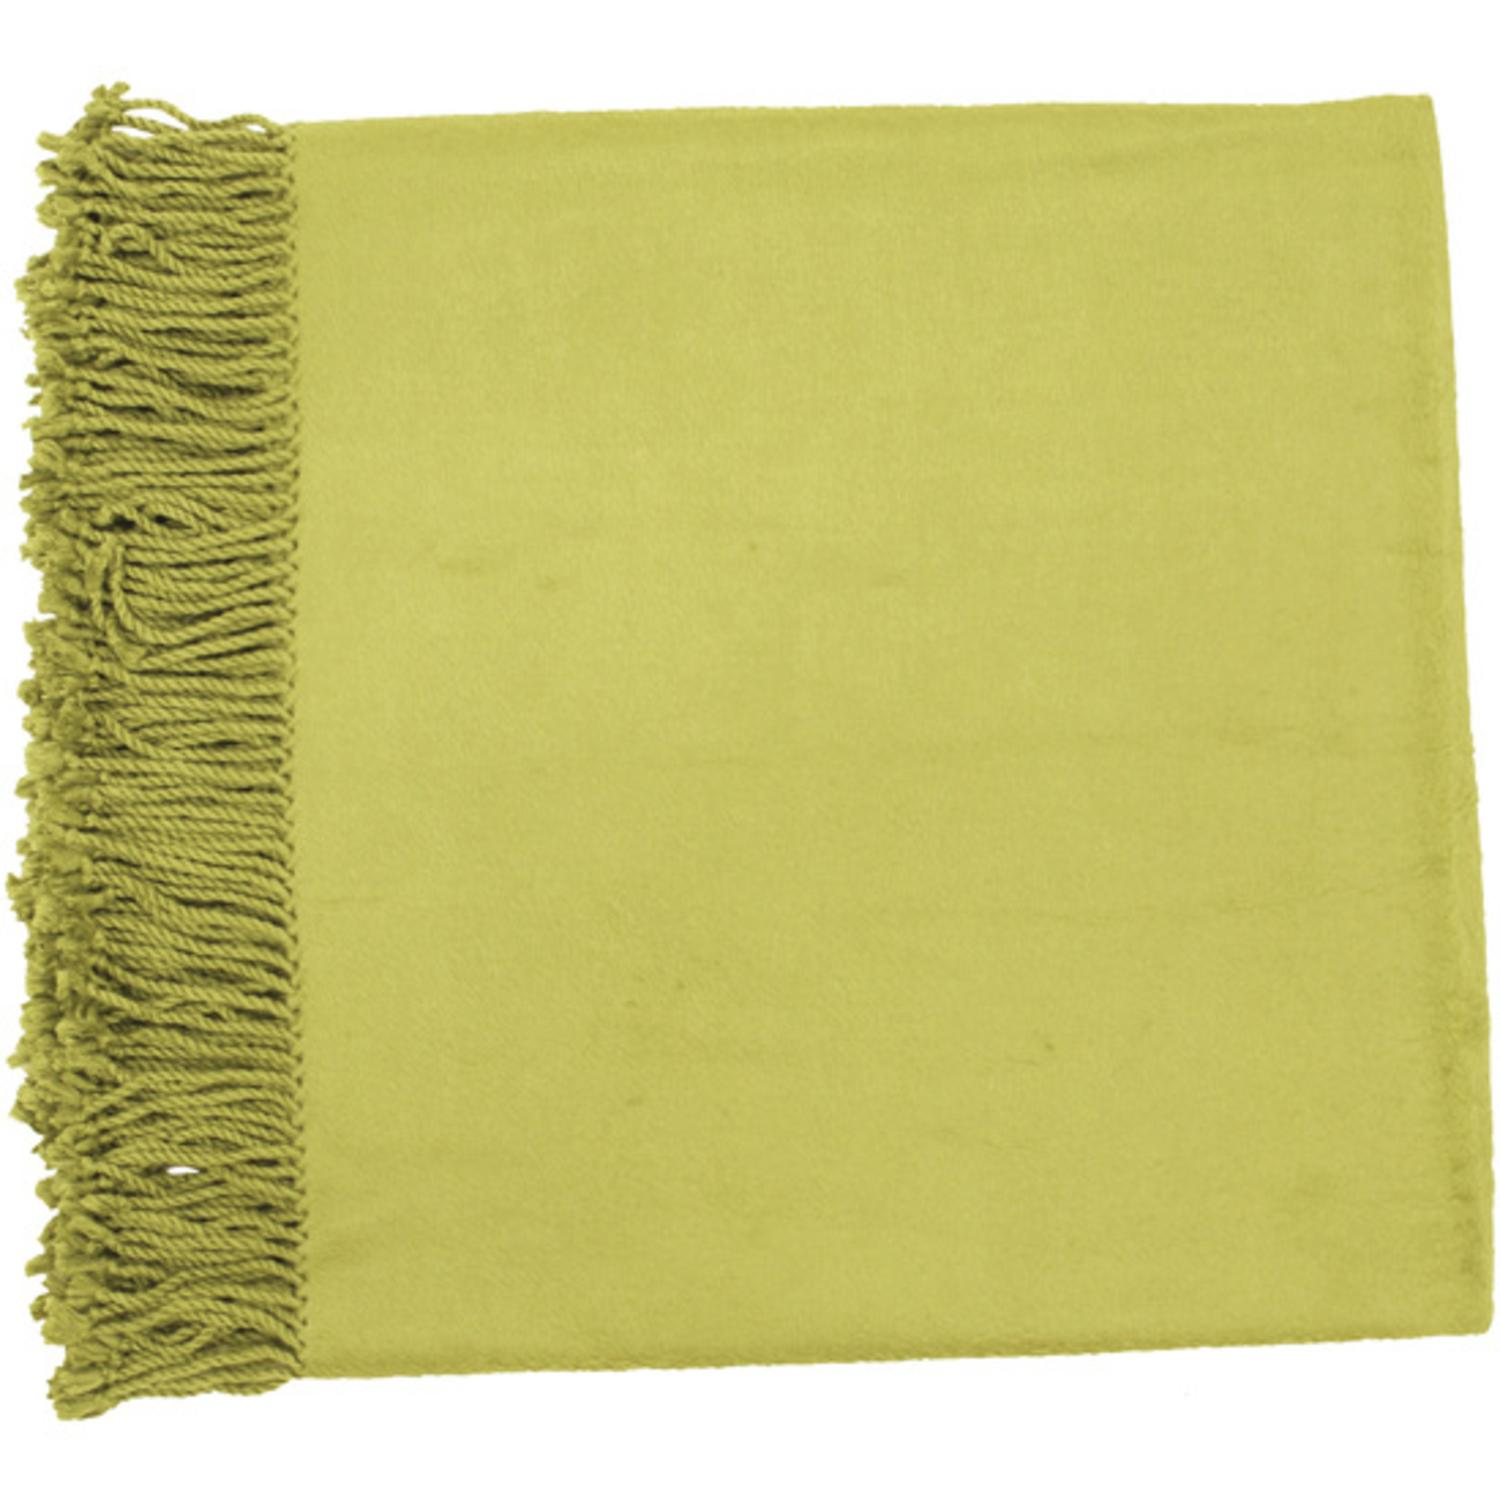 "50"" x 67"" Right At Home Cozy Avocado Green Throw Blanket"